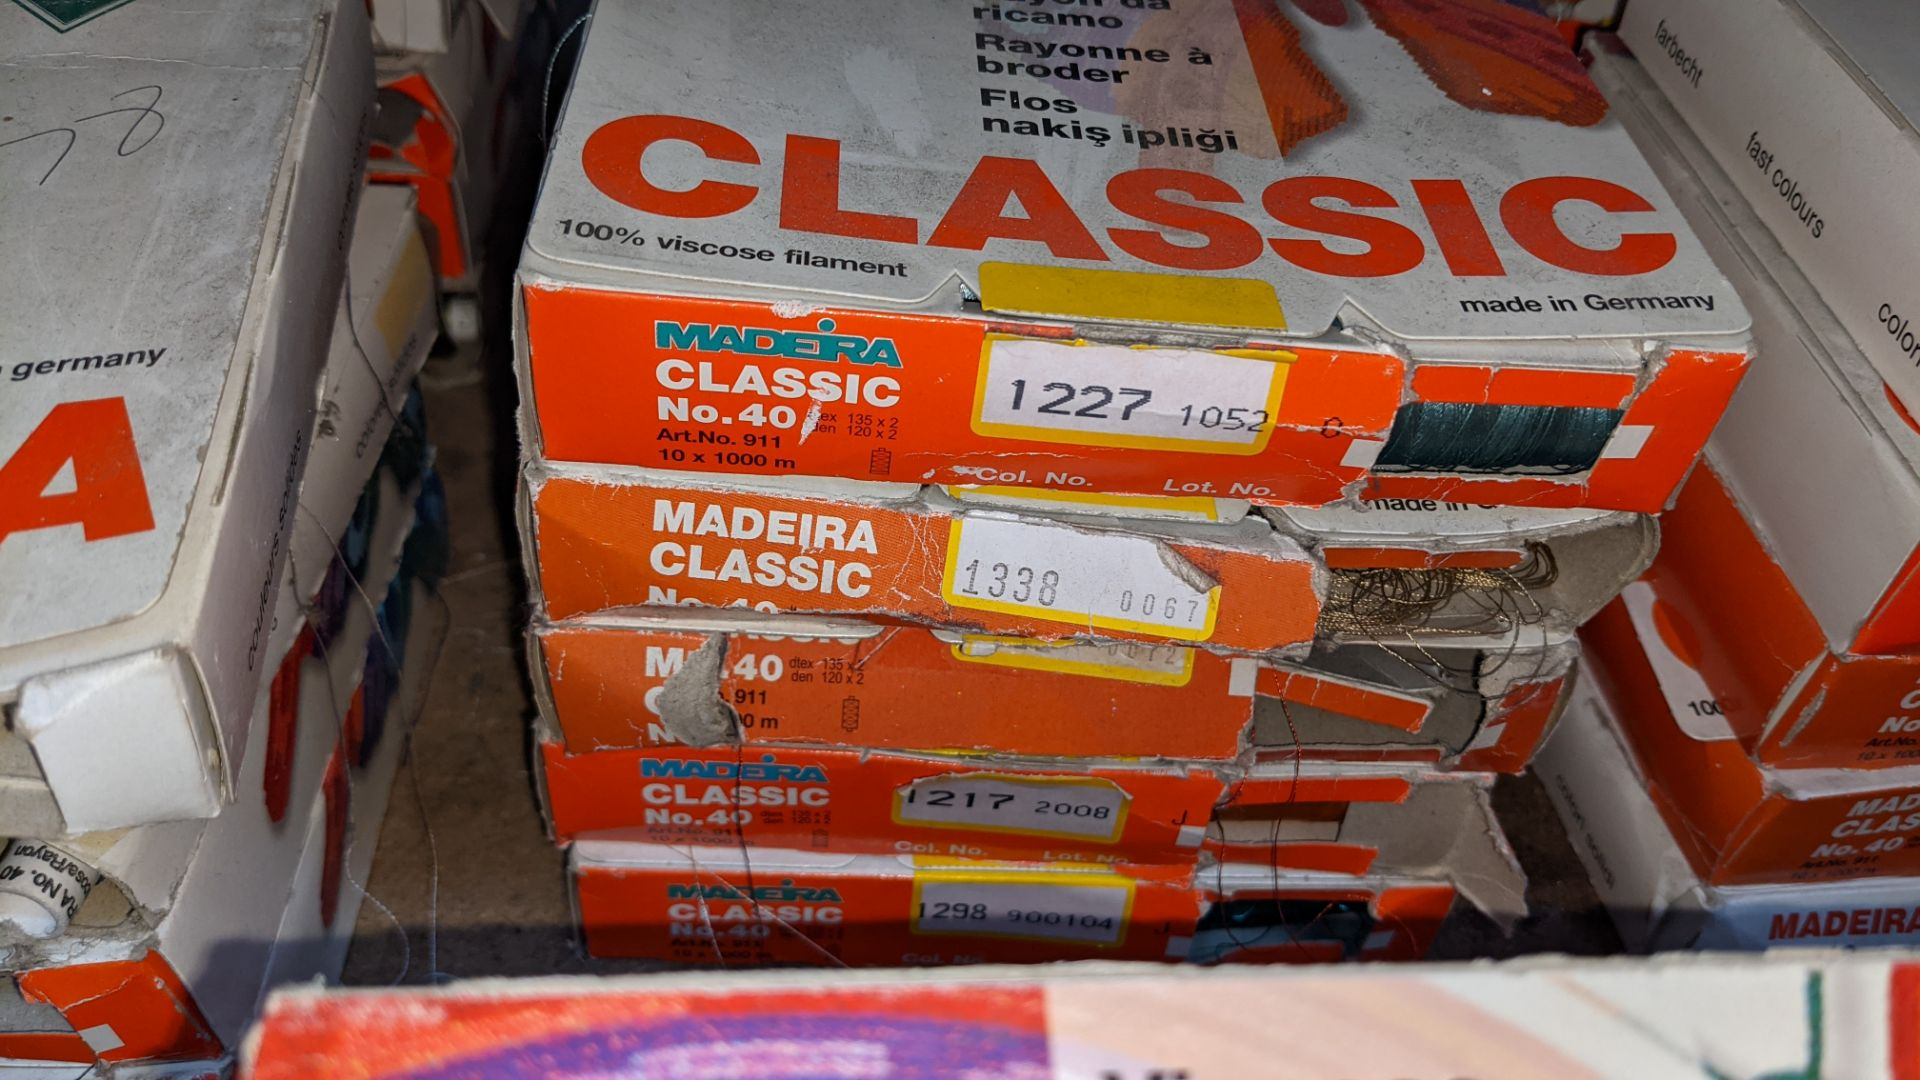 15 assorted boxes of Madeira Classic No. 40 embroidery rayon thread - Image 4 of 8